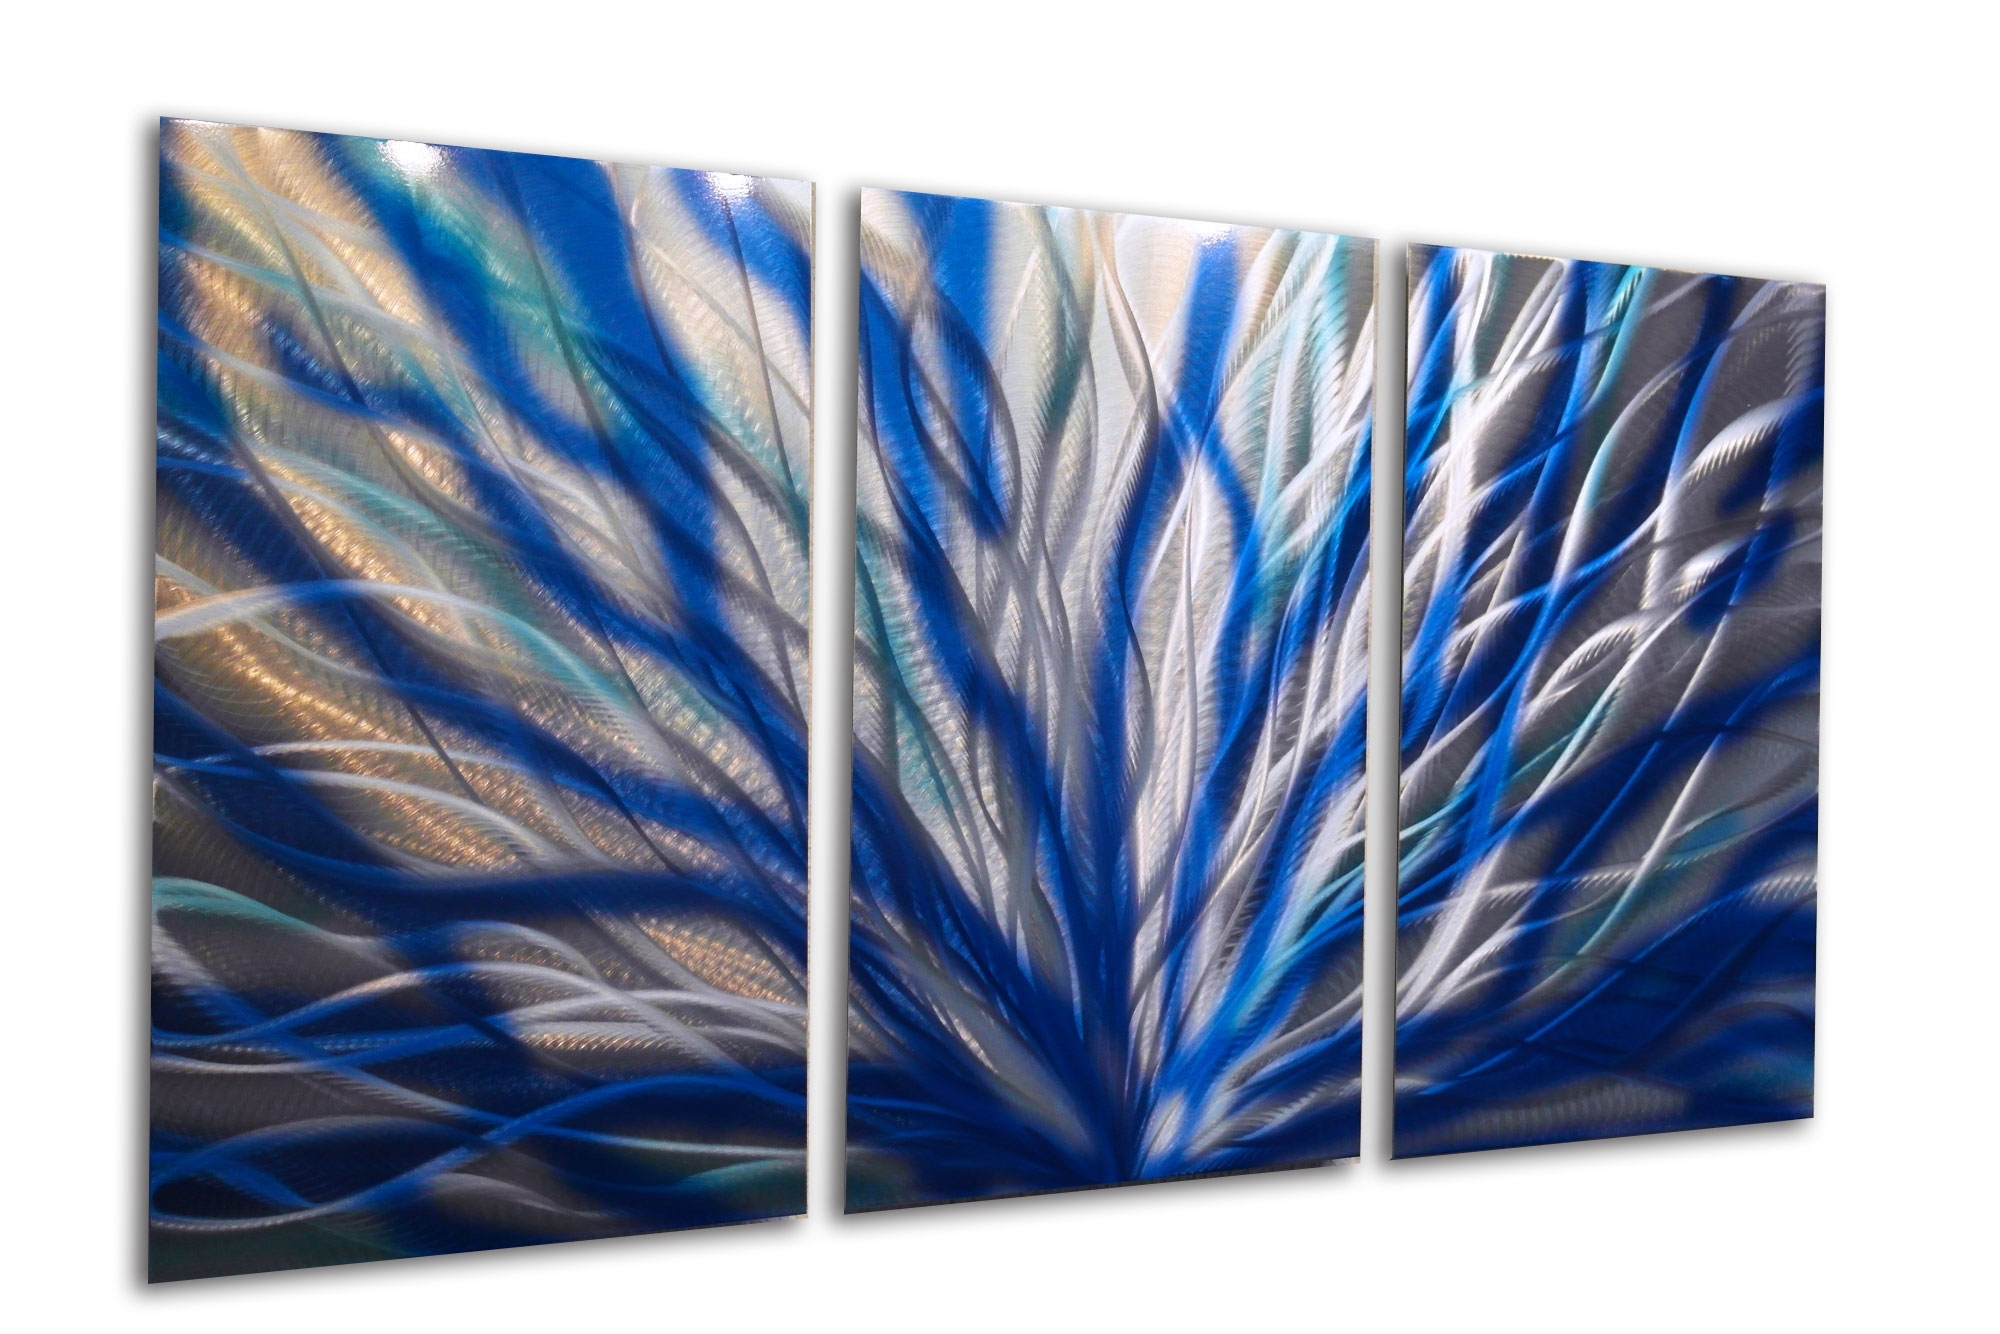 Radiance Blue 47 V2 – Metal Wall Art Abstract Sculpture Modern Within 2018 Aqua Abstract Wall Art (Gallery 2 of 20)